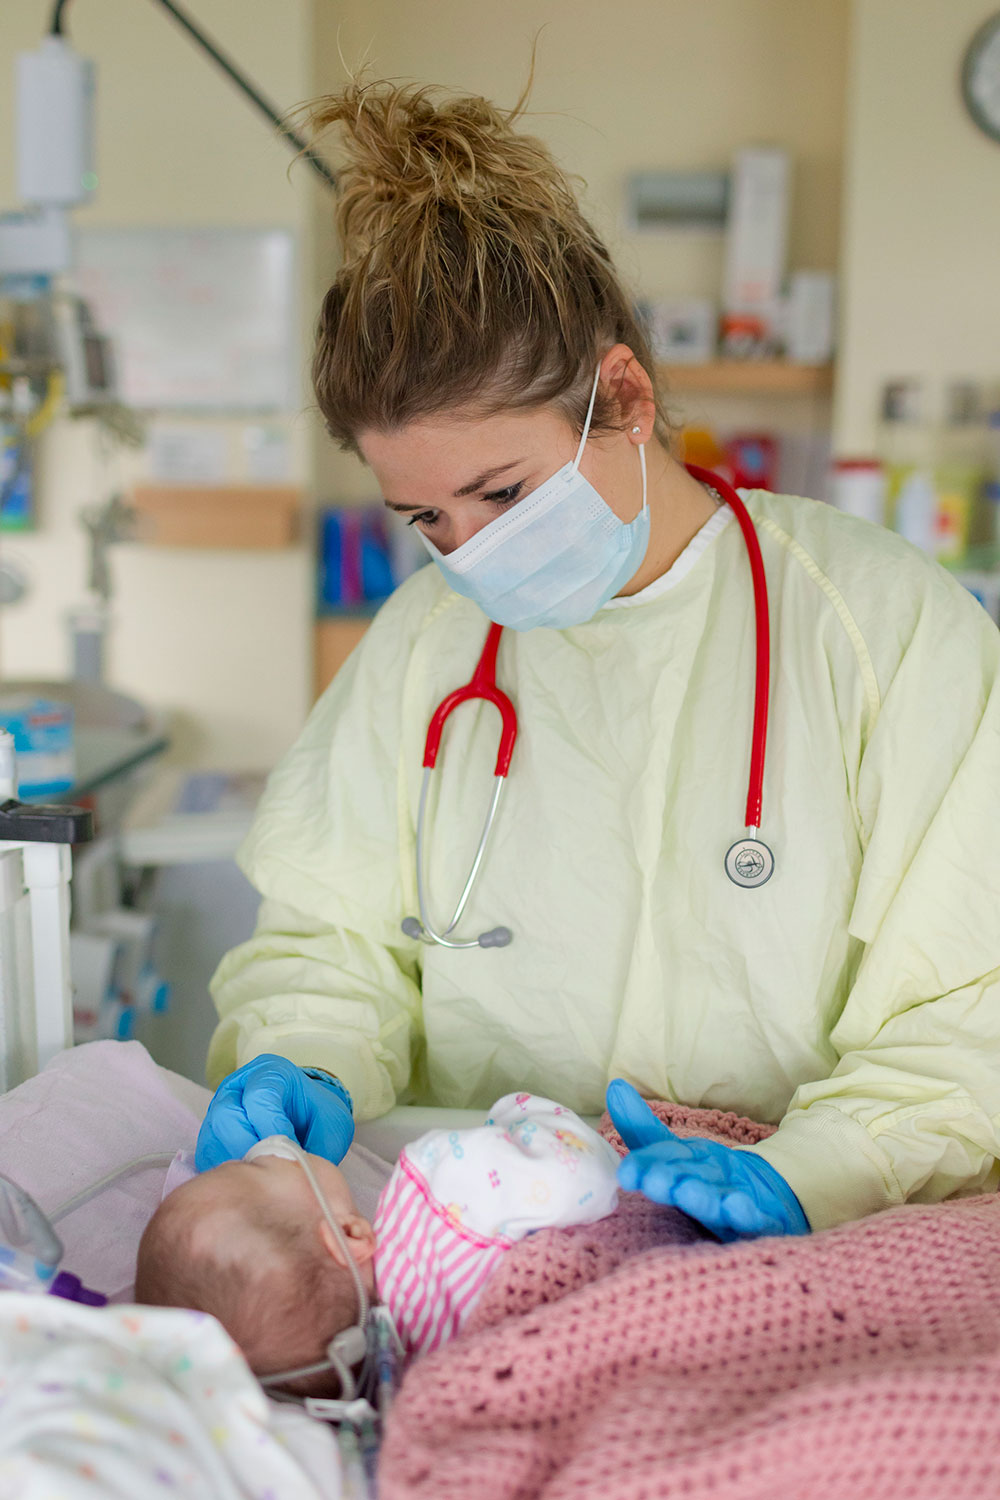 Baby being tended to by doctor